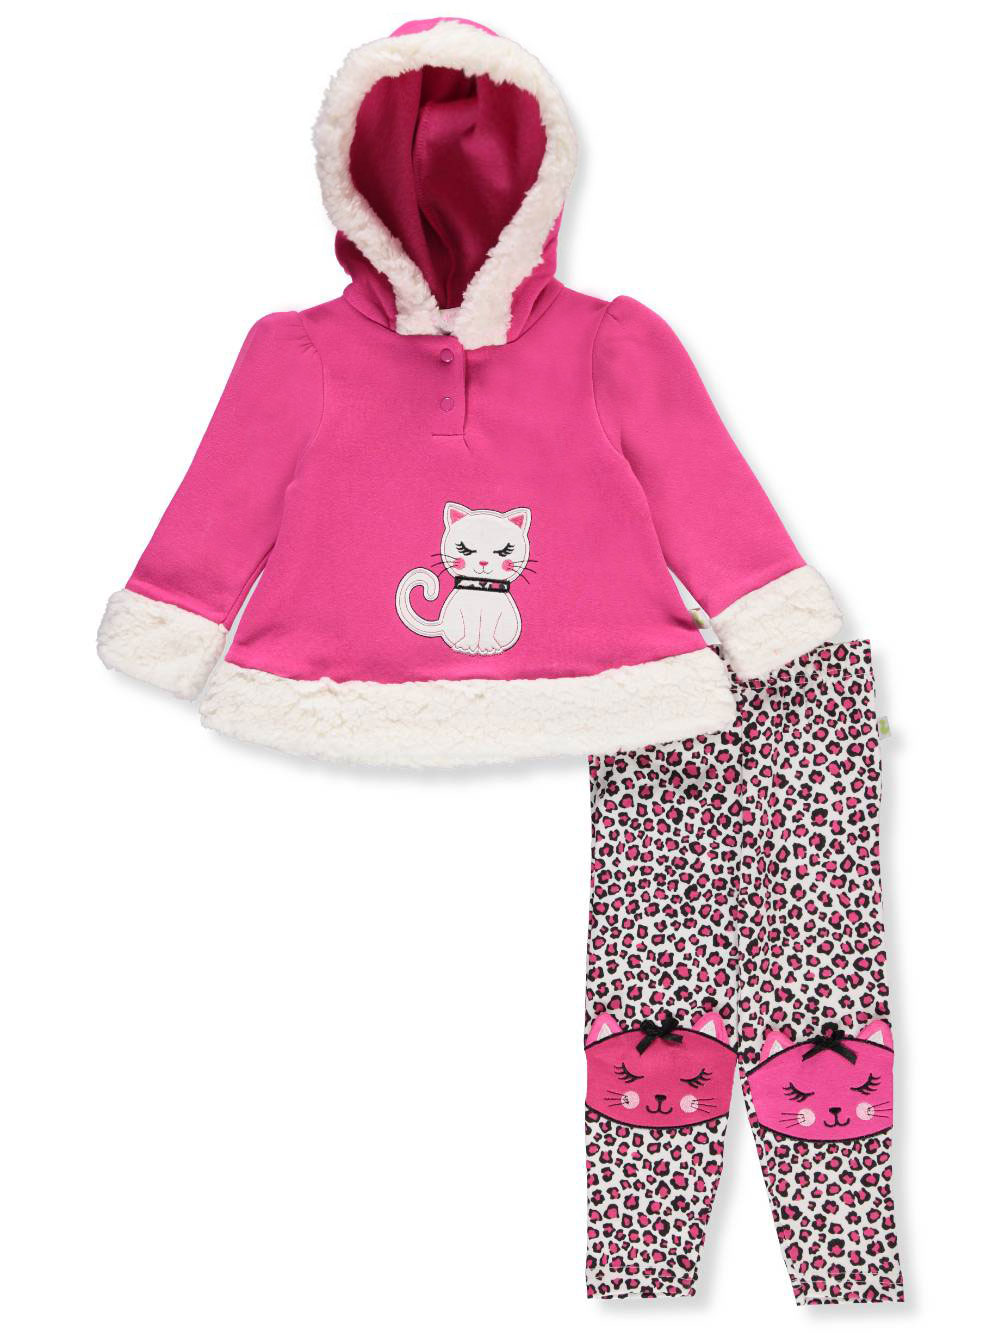 Duck Duck Goose Baby Girls 2 Piece Pants Set Outfit